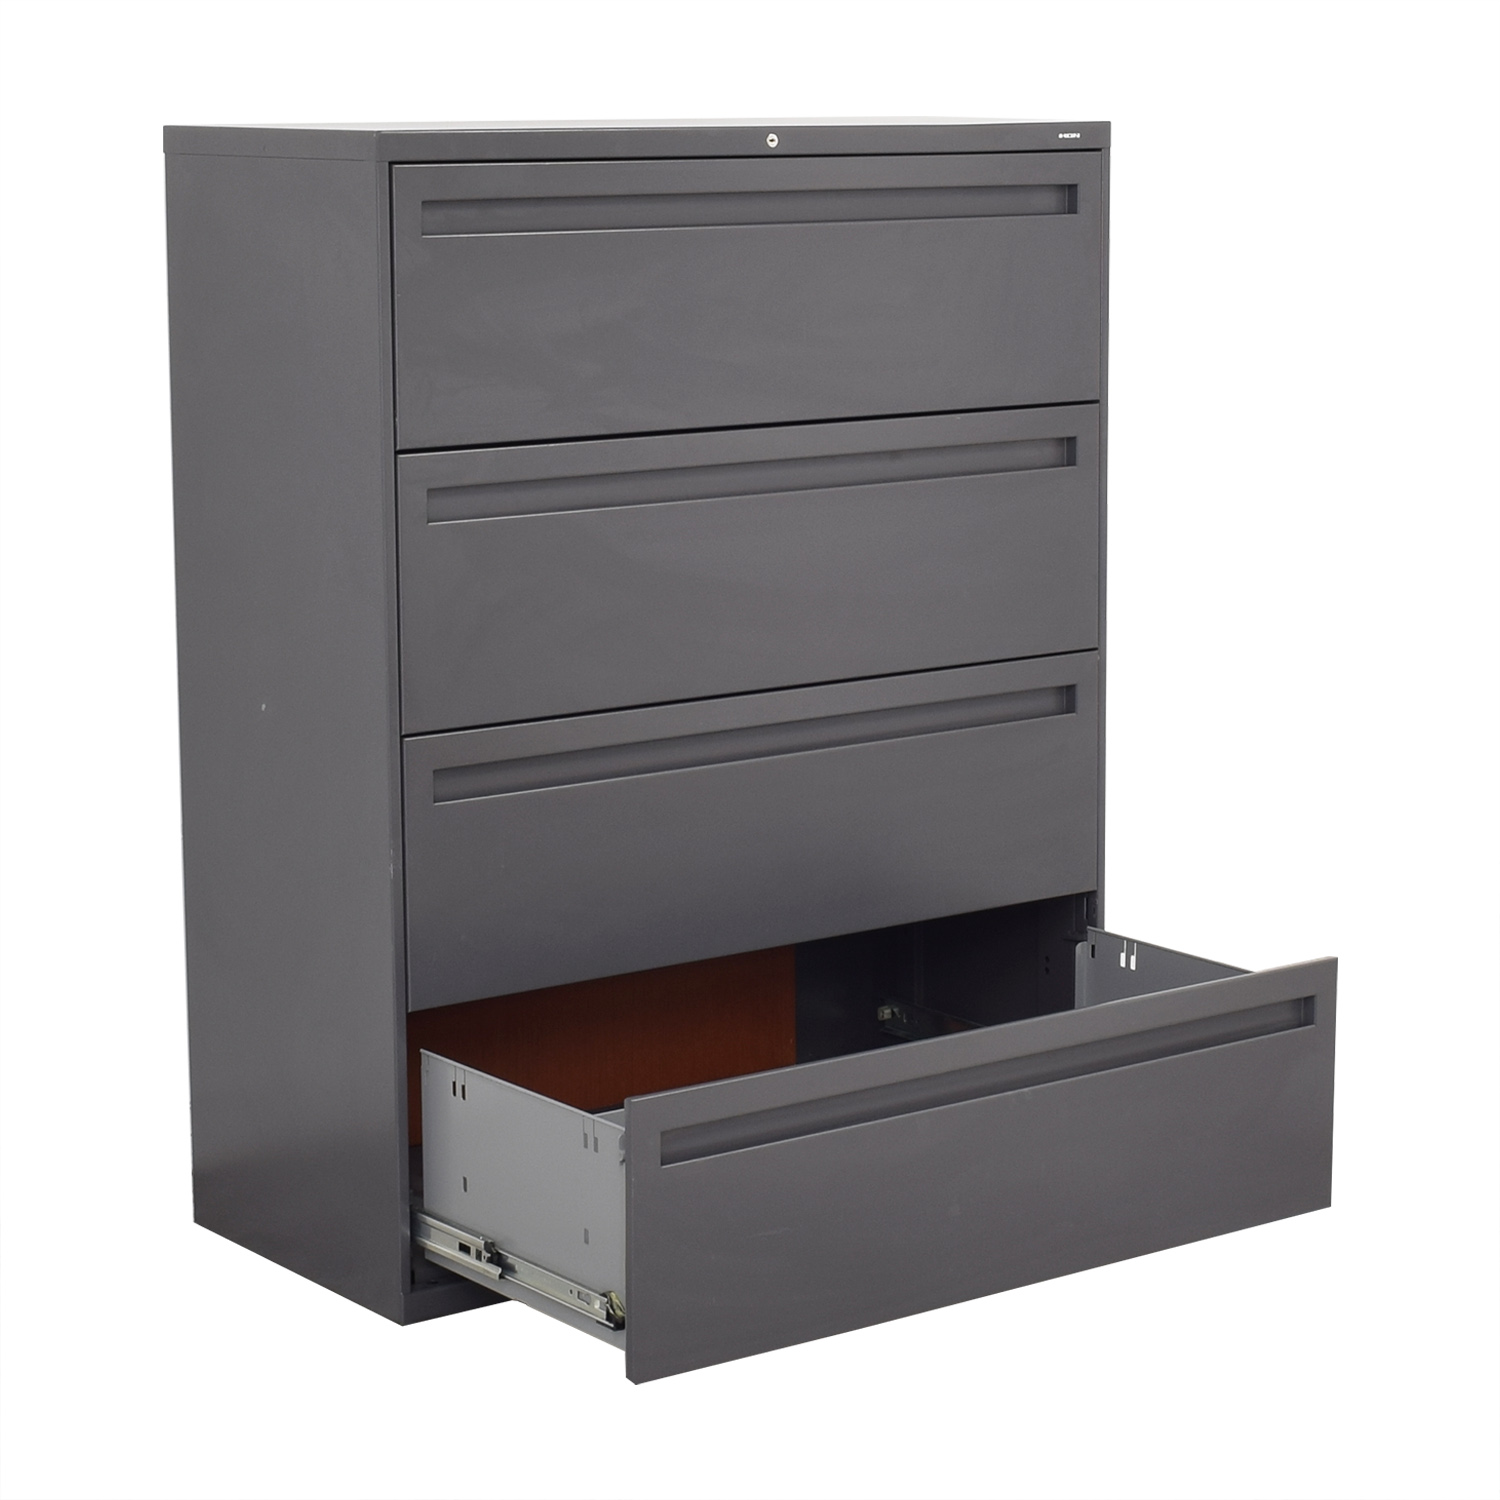 Hon Hon 4-Drawer Lateral Filing Cabinet discount